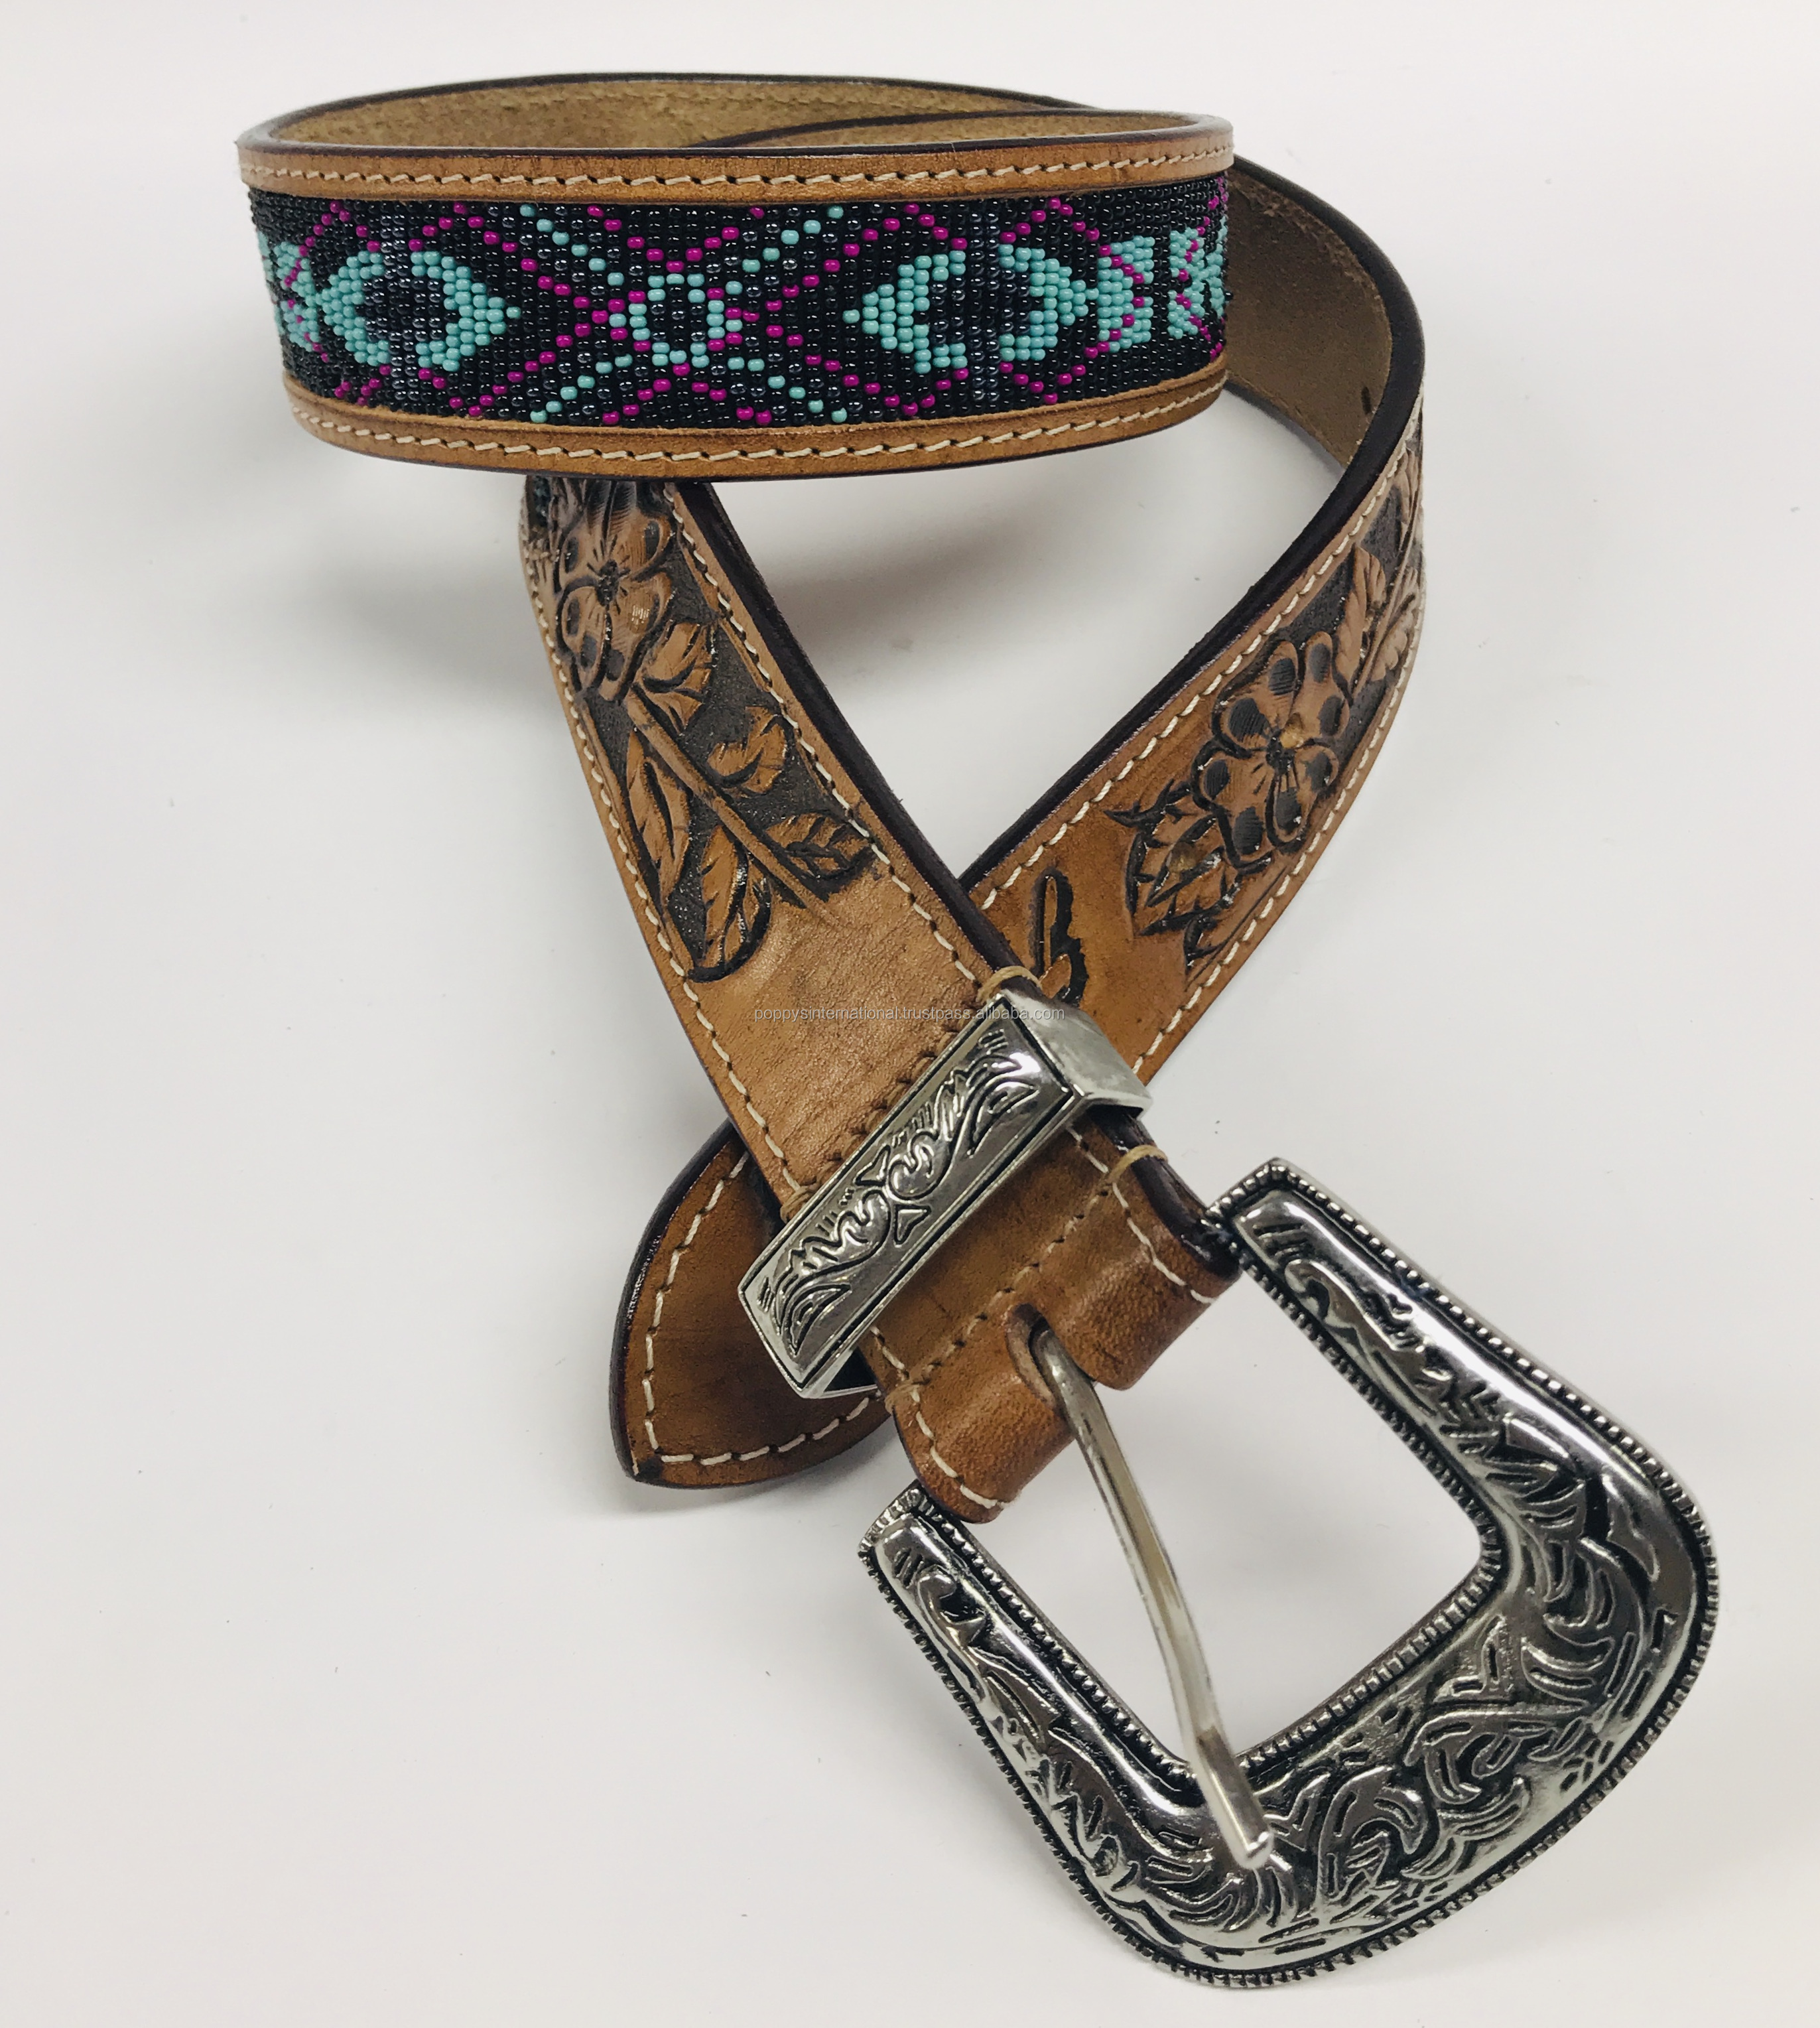 HAND MADE SPECIAL CROSS BEADED DESIGN LEATHER BELT